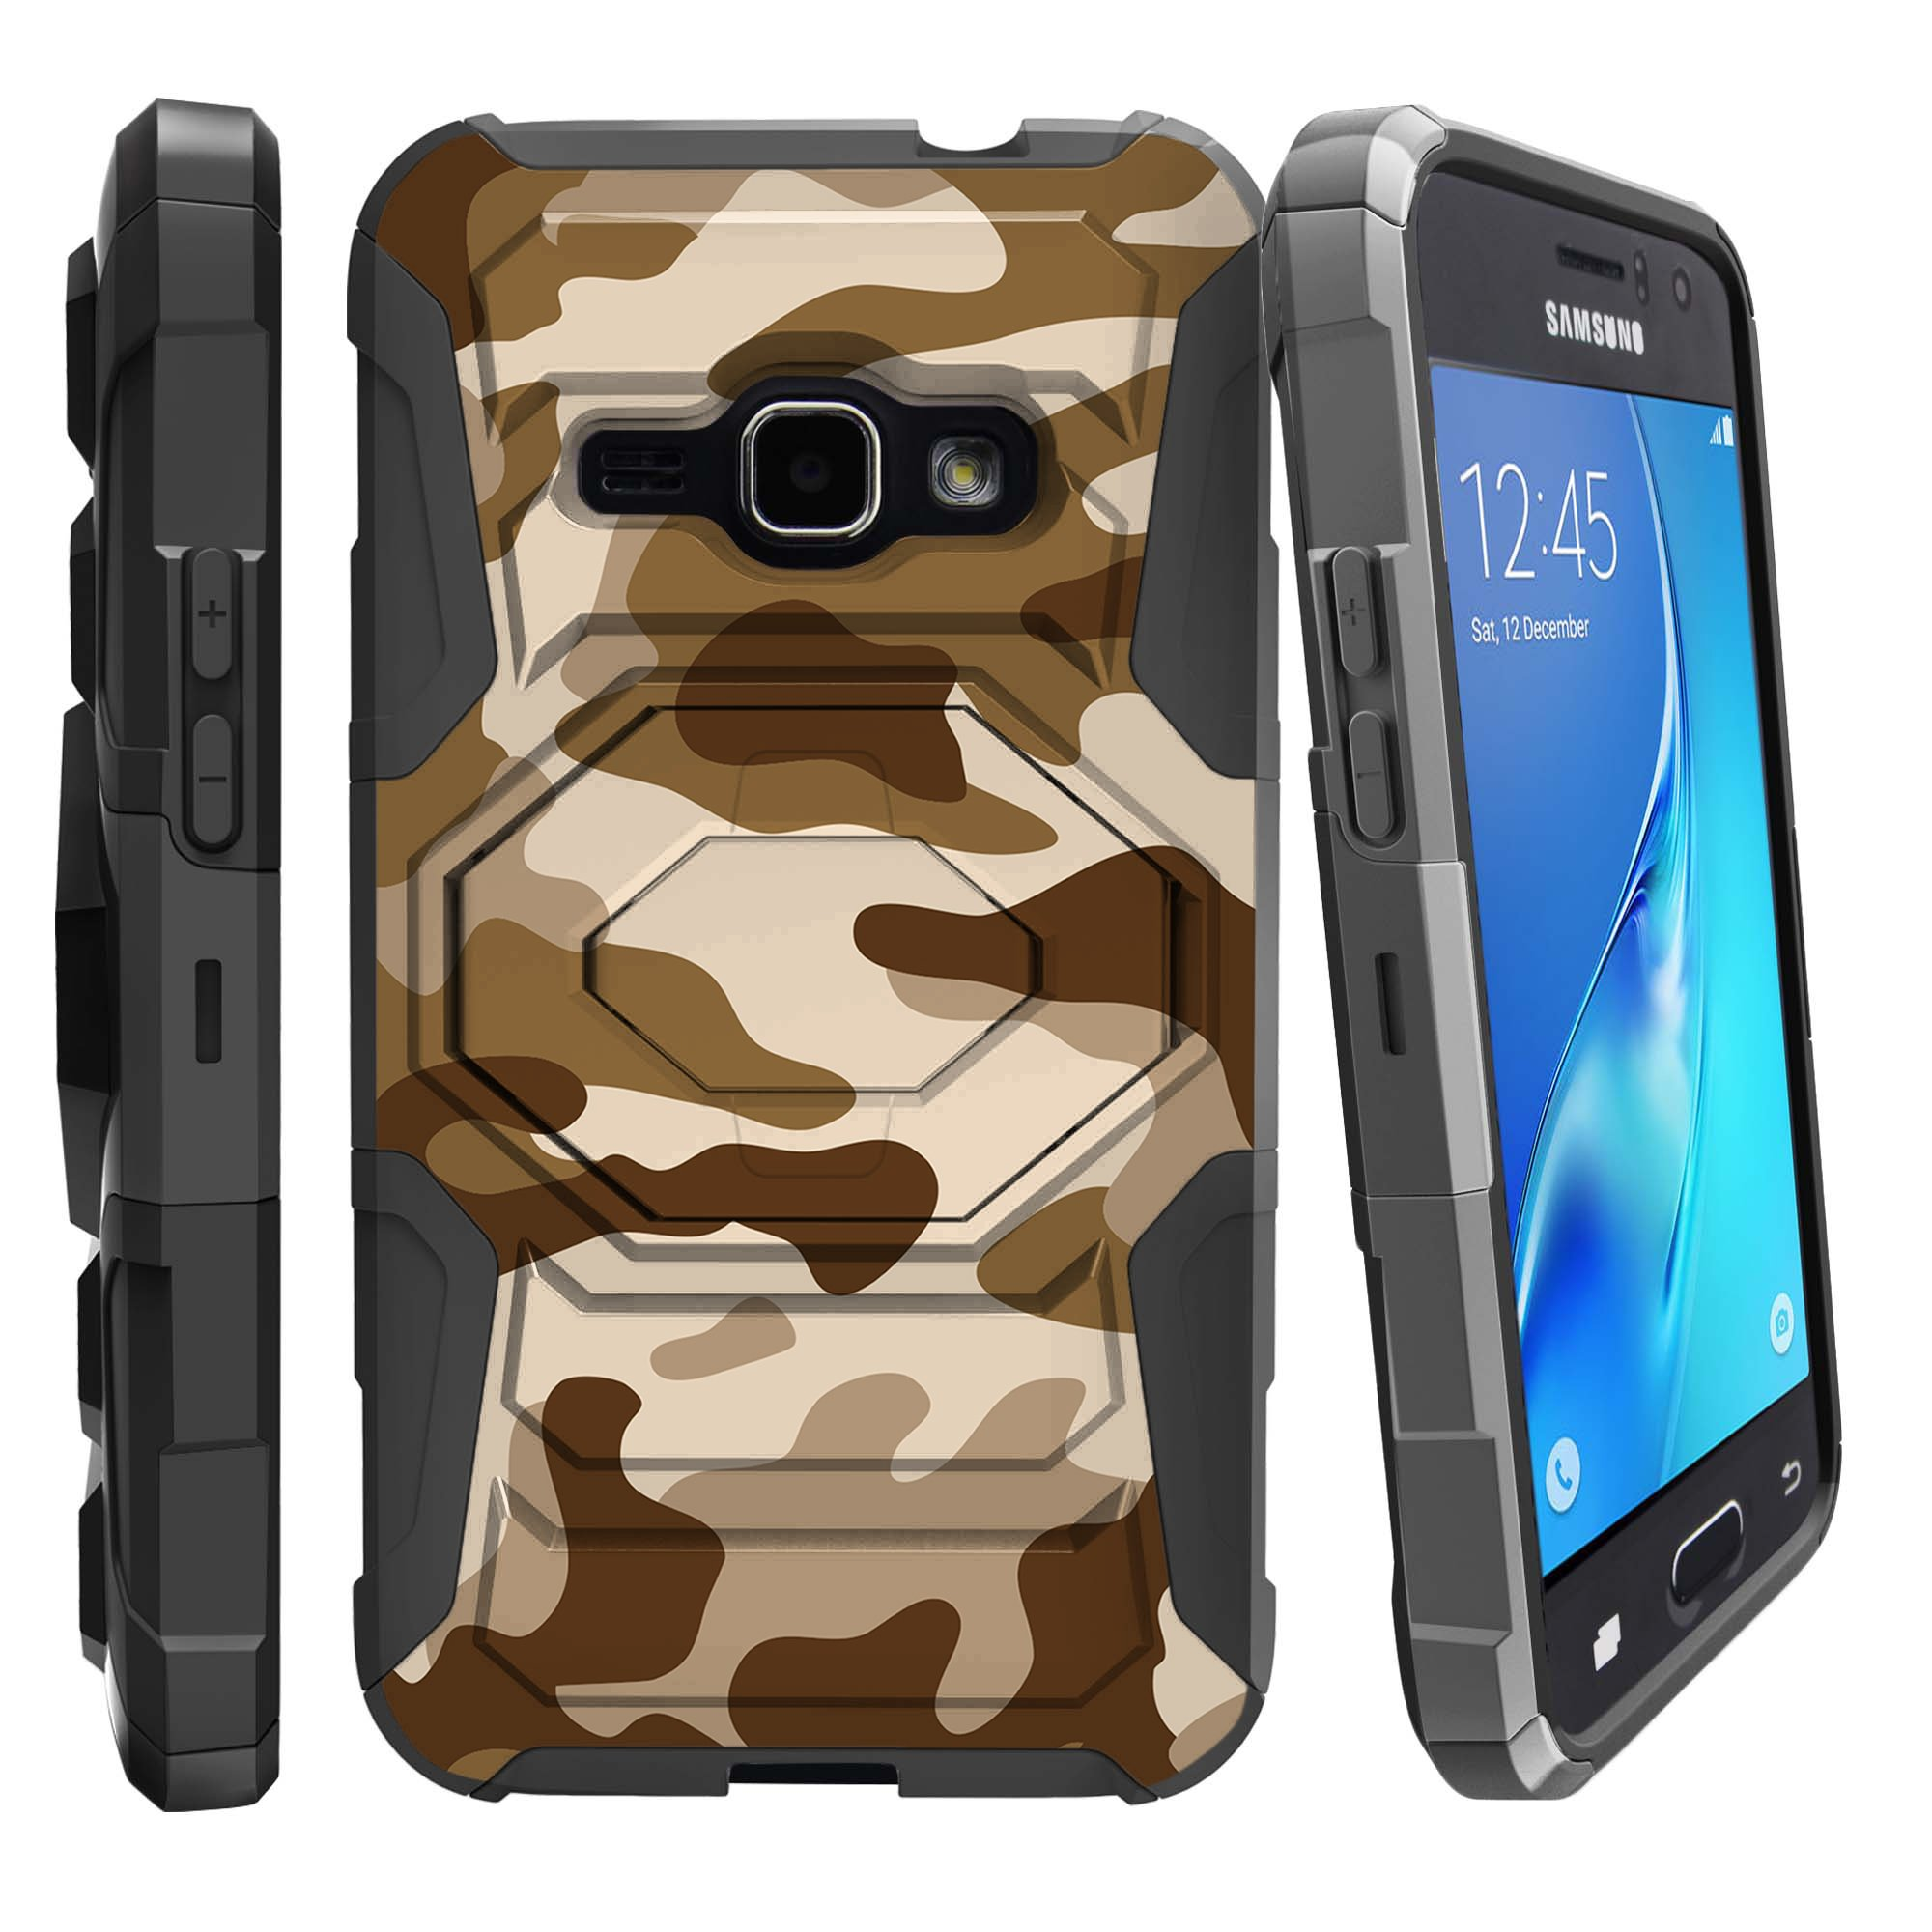 Case for Samsung Galaxy J3 (SM-J310) | Case for Express Prime | Case for Amp Prime  [ Armor Reloaded ] Heavy Duty Case with Belt Clip & Kickstand Camo Collection